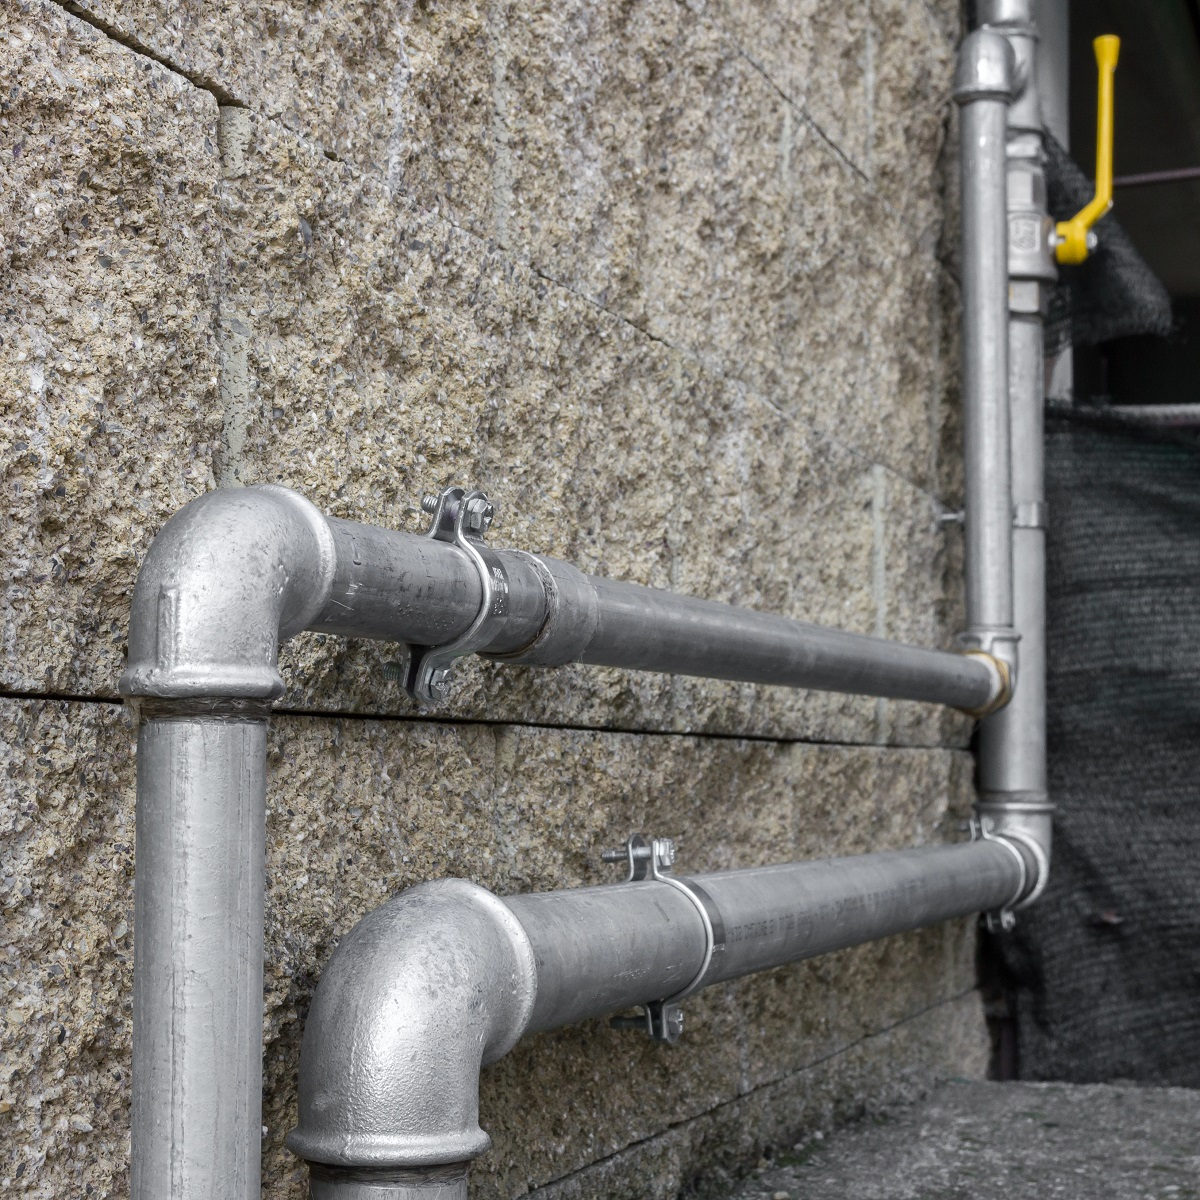 Gas pipes of a heating system